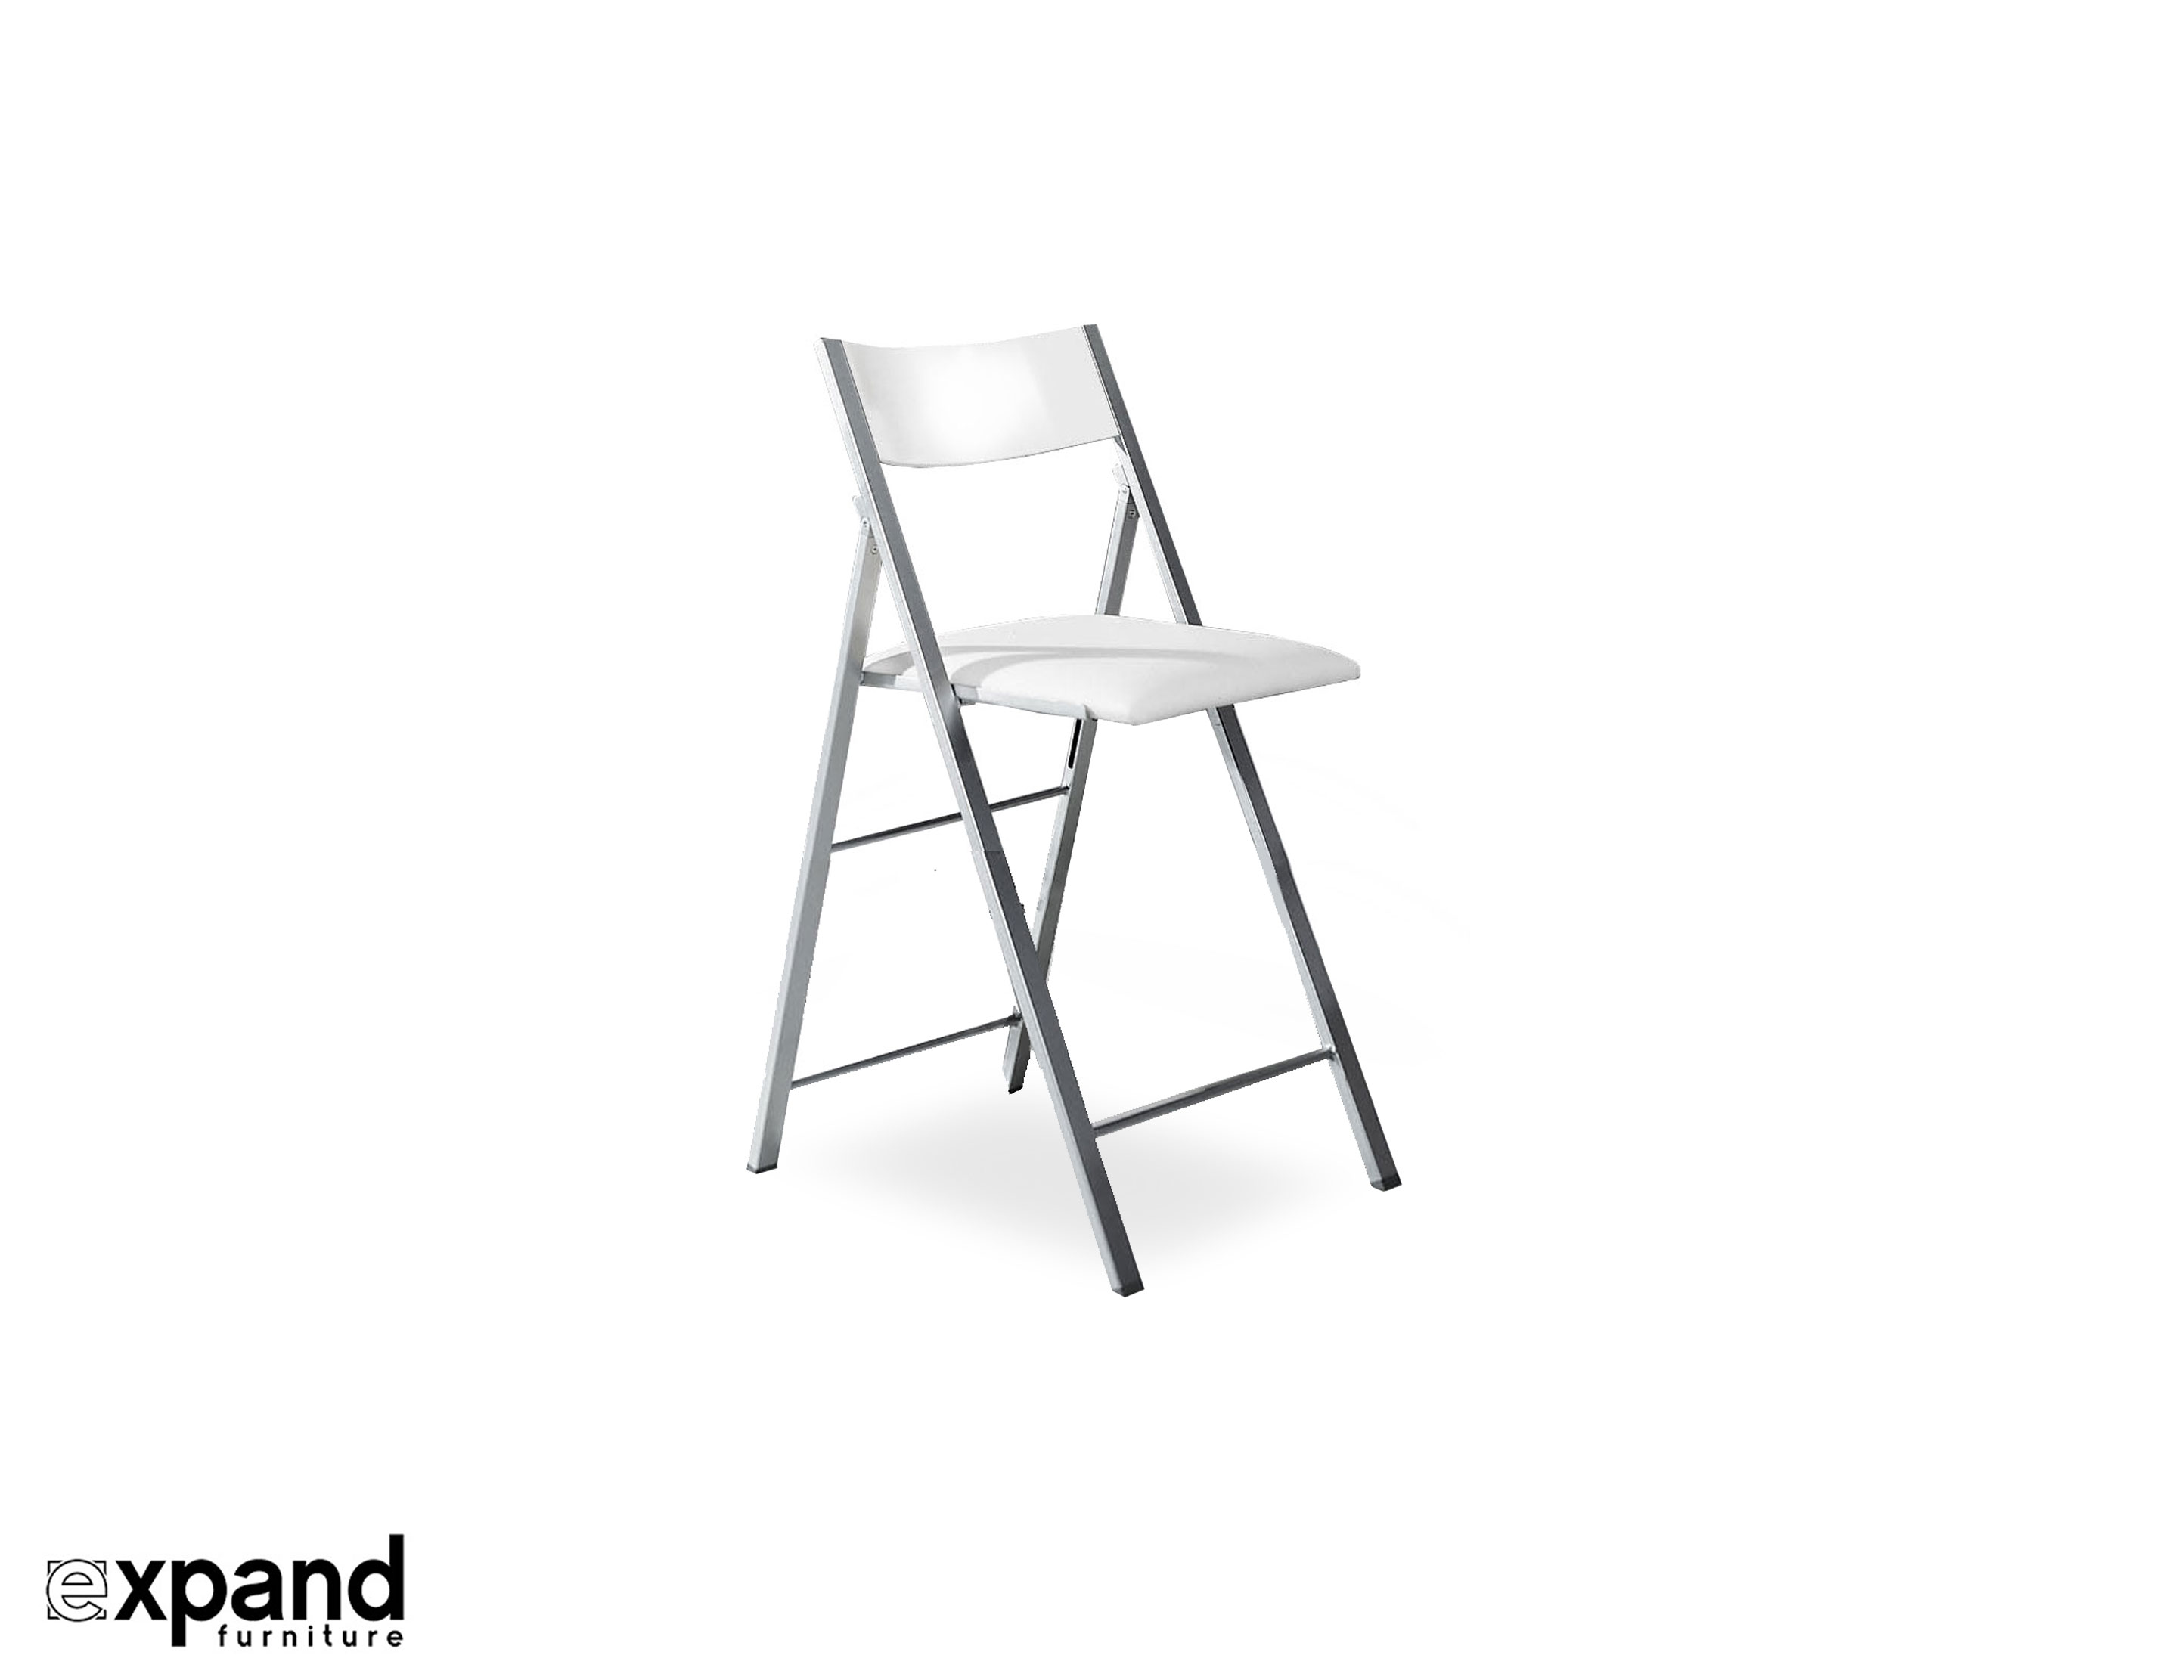 Nano Counter Height Folding Chair Flat. Prev